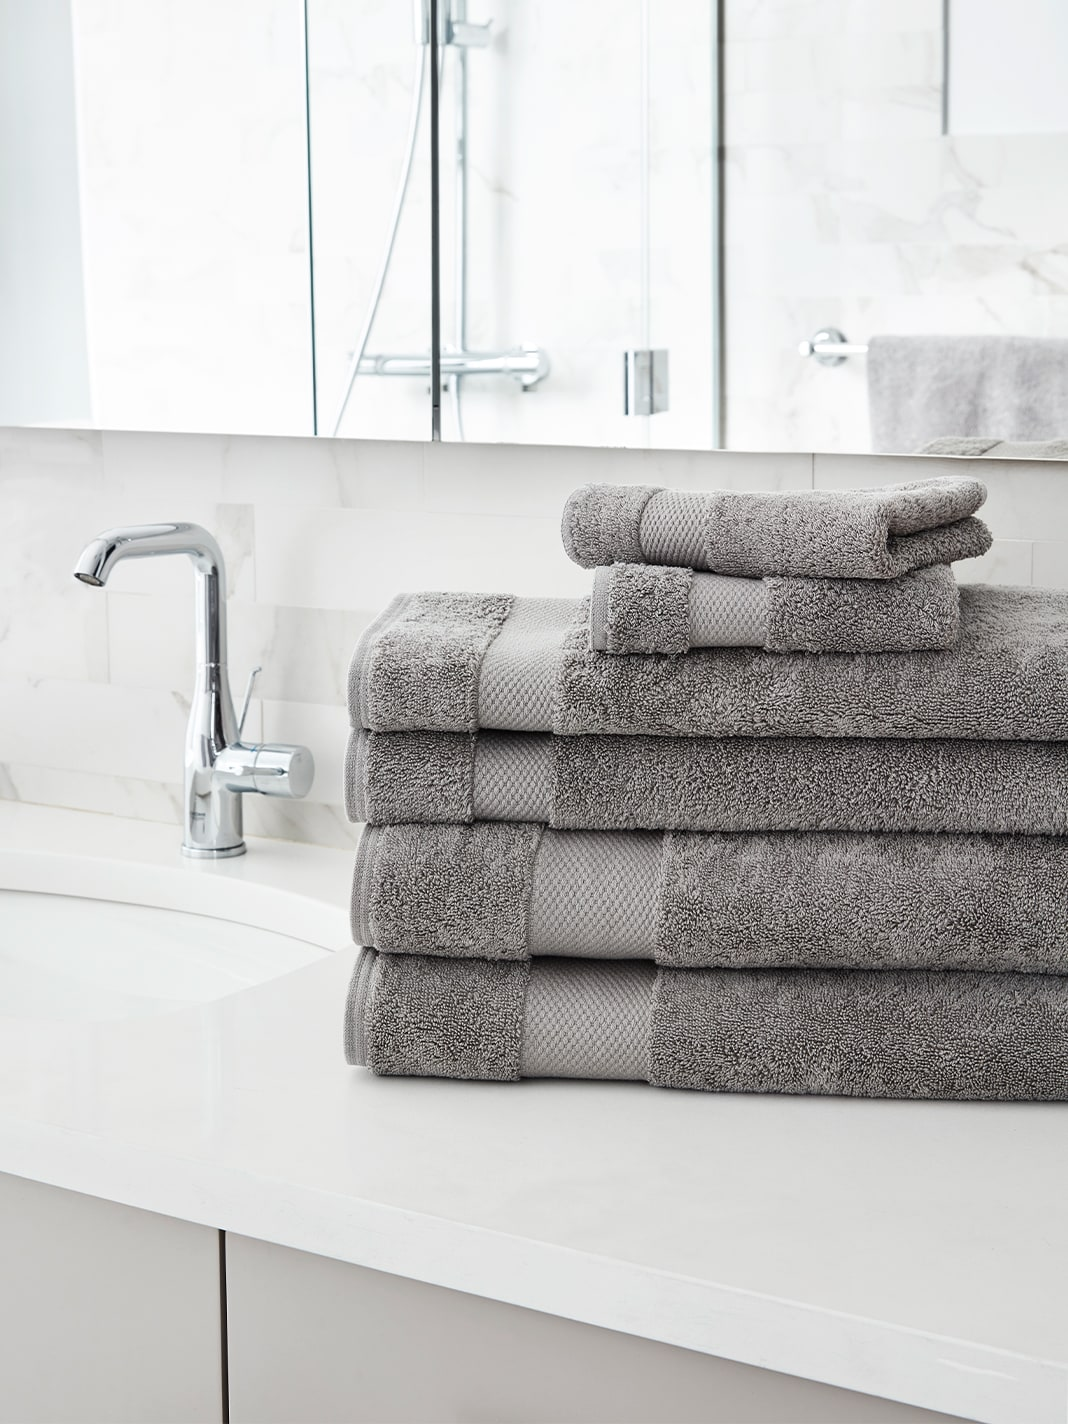 Gorgeous grey towel set from Boll & Branch in stone color. #greytowels #bathtowels #bathrooms #spatowels